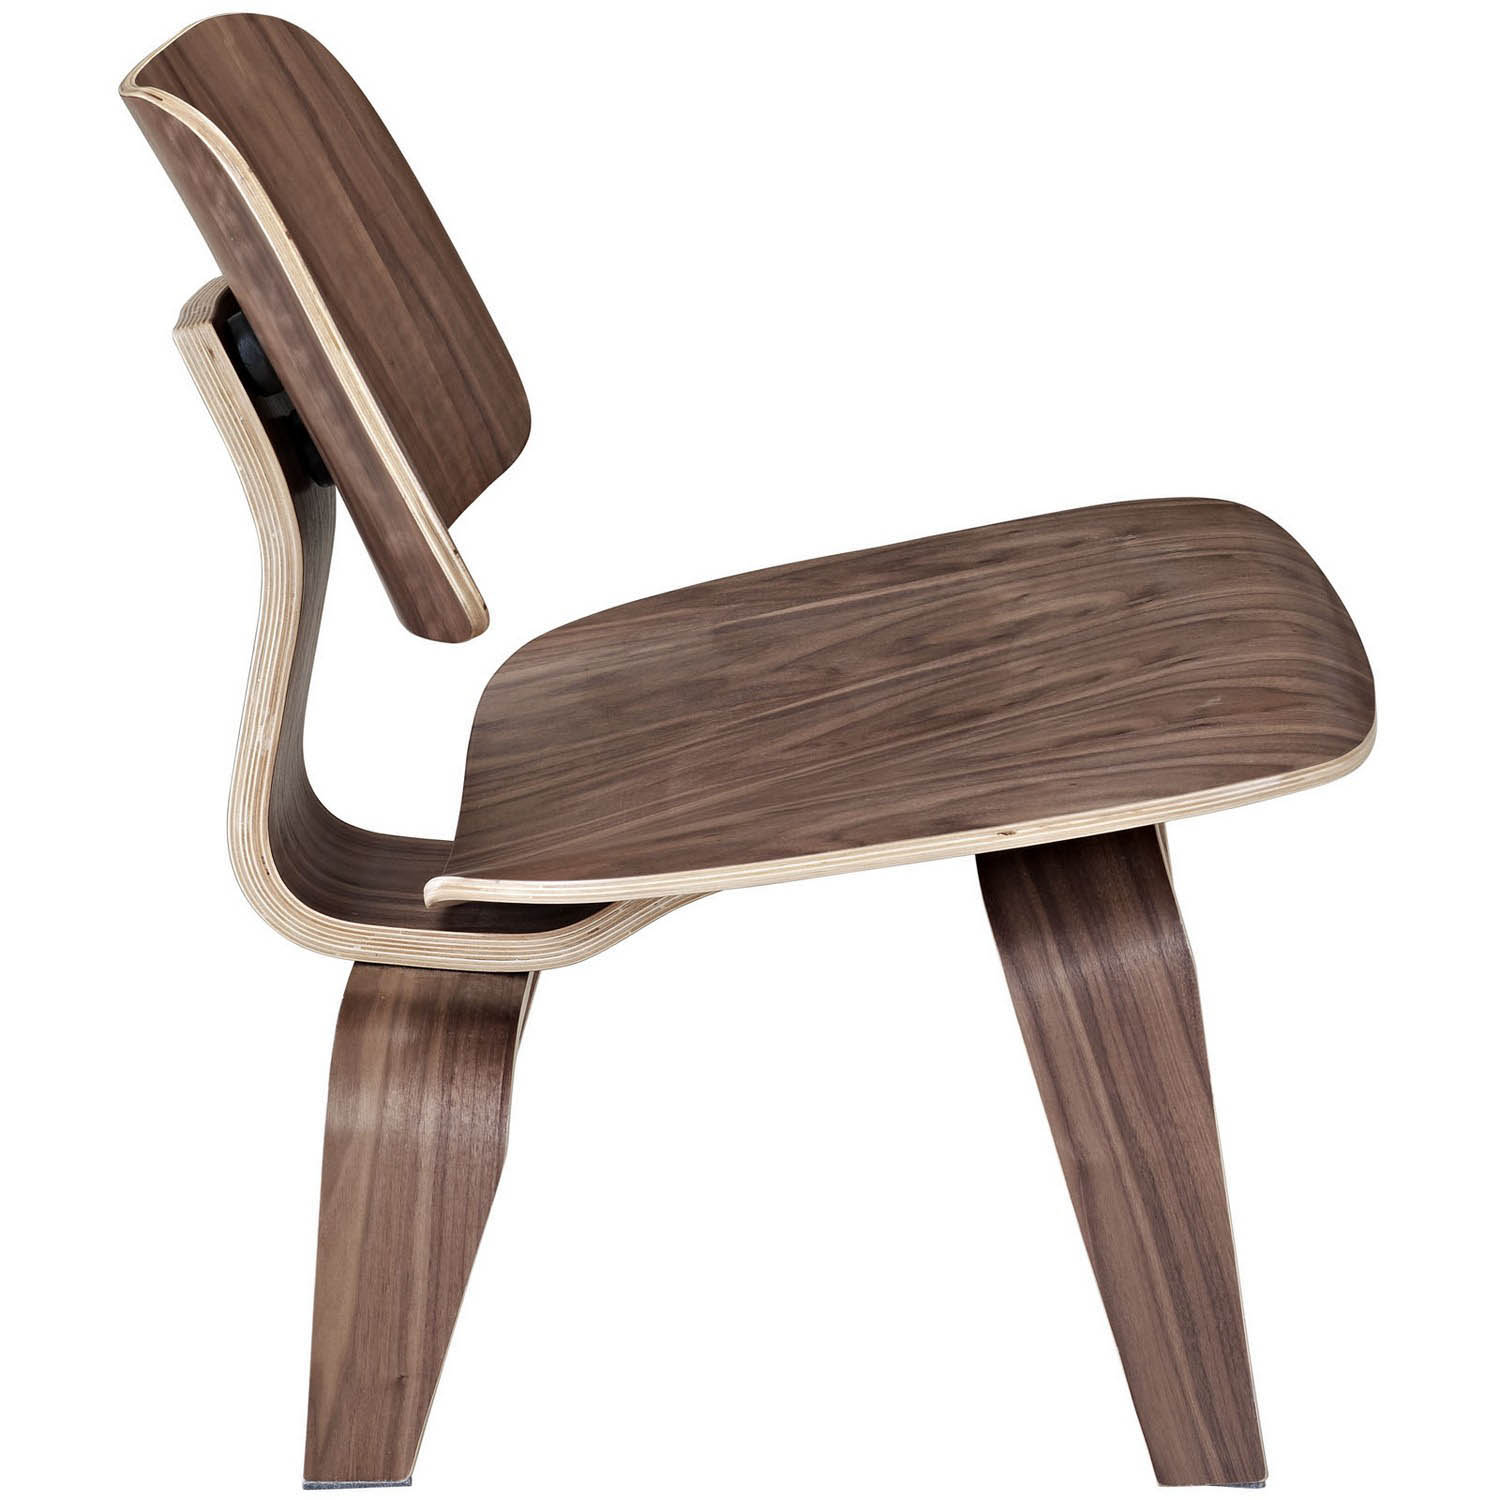 Modway Fathom Lounge Chair - Walnut